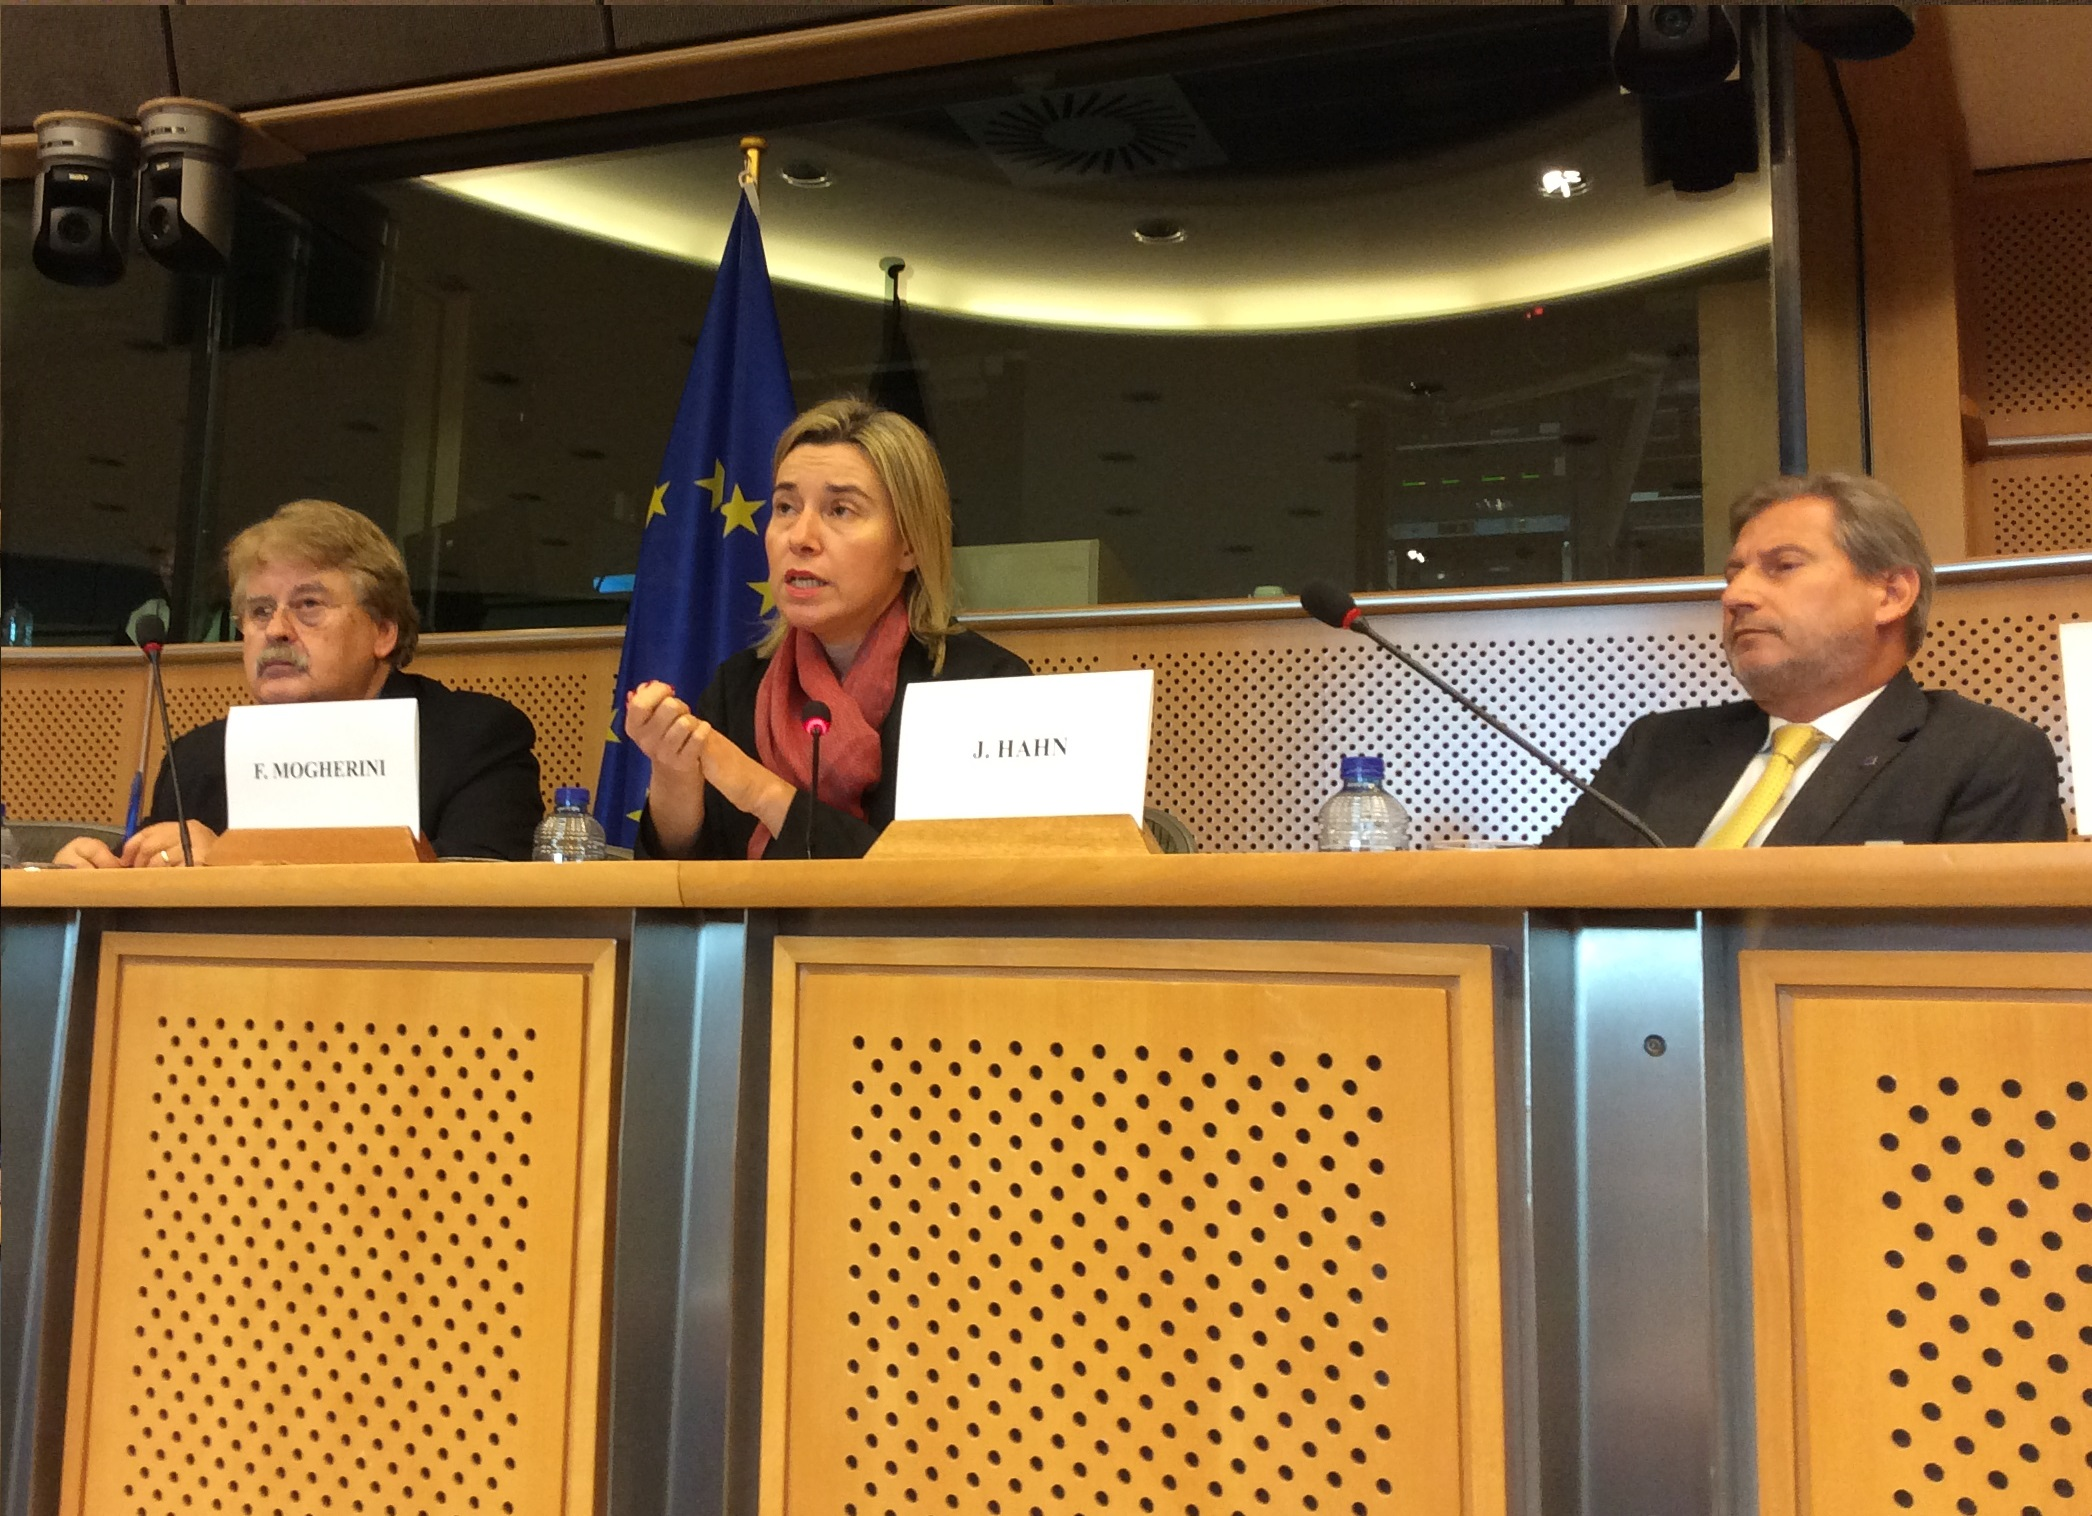 On 18 November, VP/HR Federica Mogherini and Commissioner Johannes Hahn presented the joint communication on the review of the European Neighbourhood Policy to the Committee on Foreign Affairs of the European Parliament.